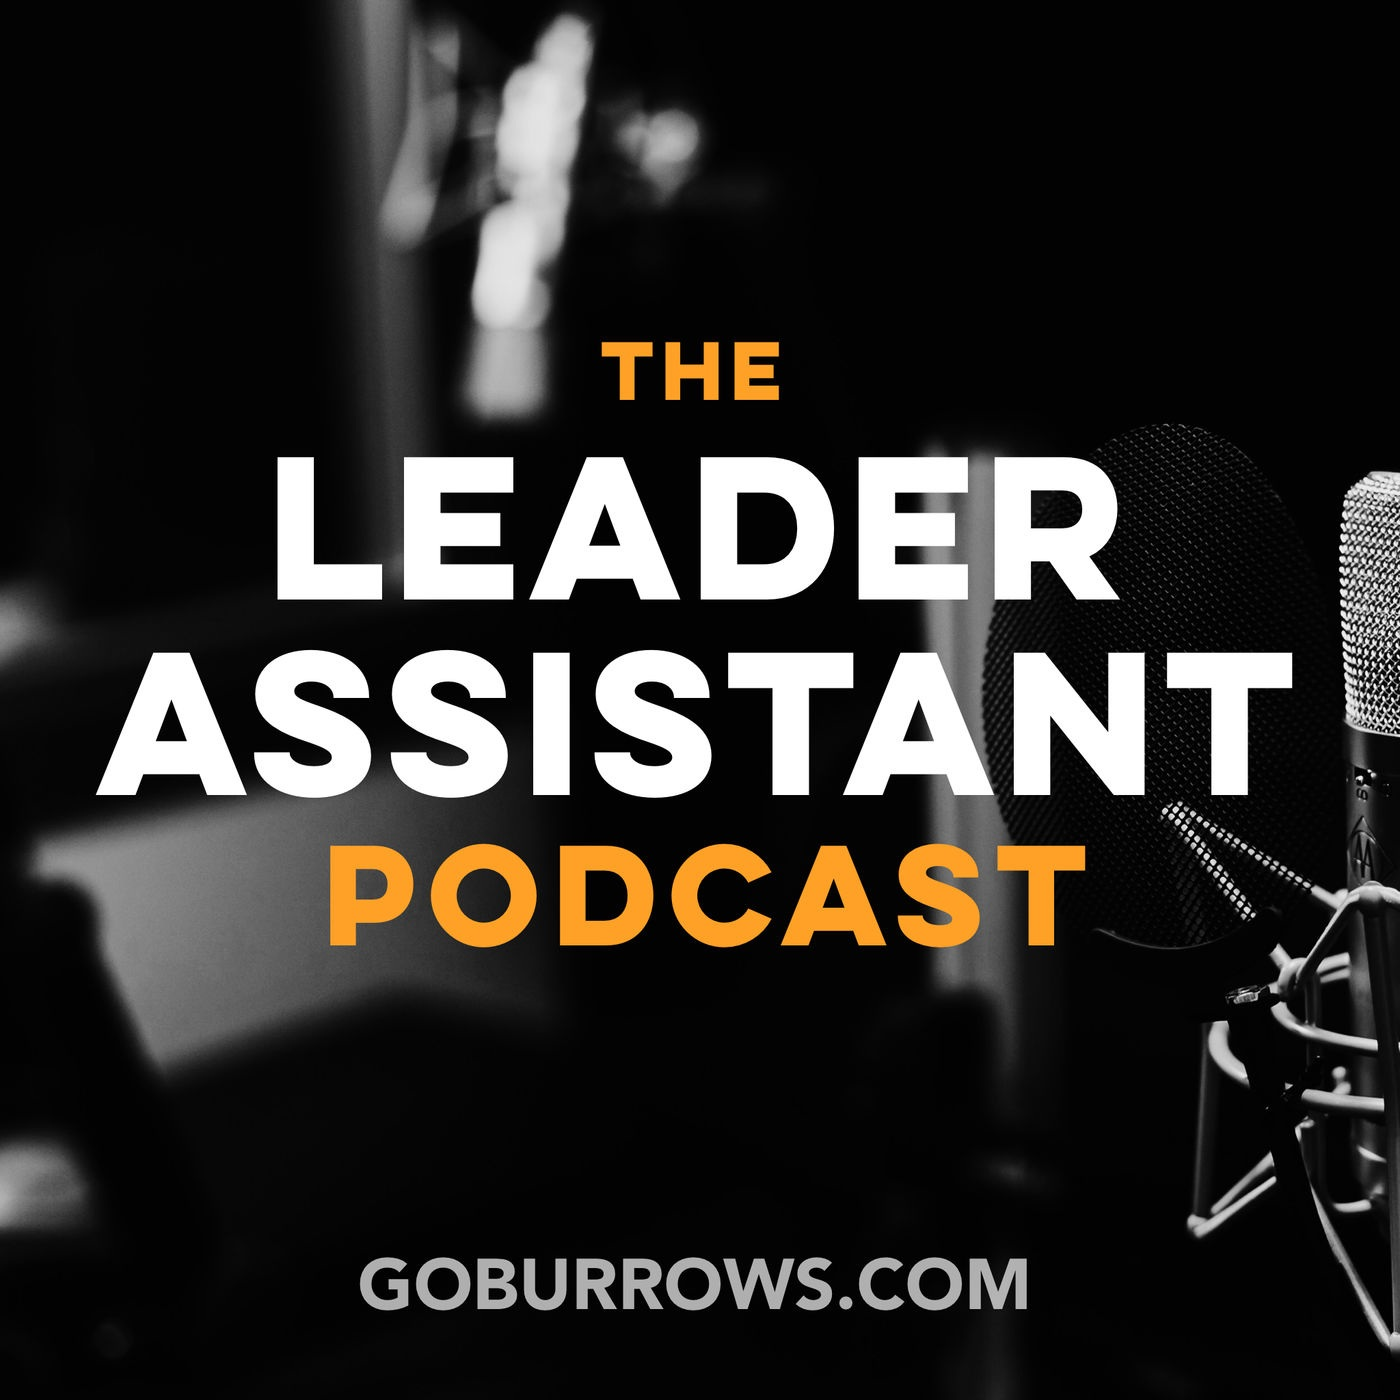 Jeremy Burrows was kind enough to interview me on his Leader Assistant podcast for CEOs and their world-changing assistants.